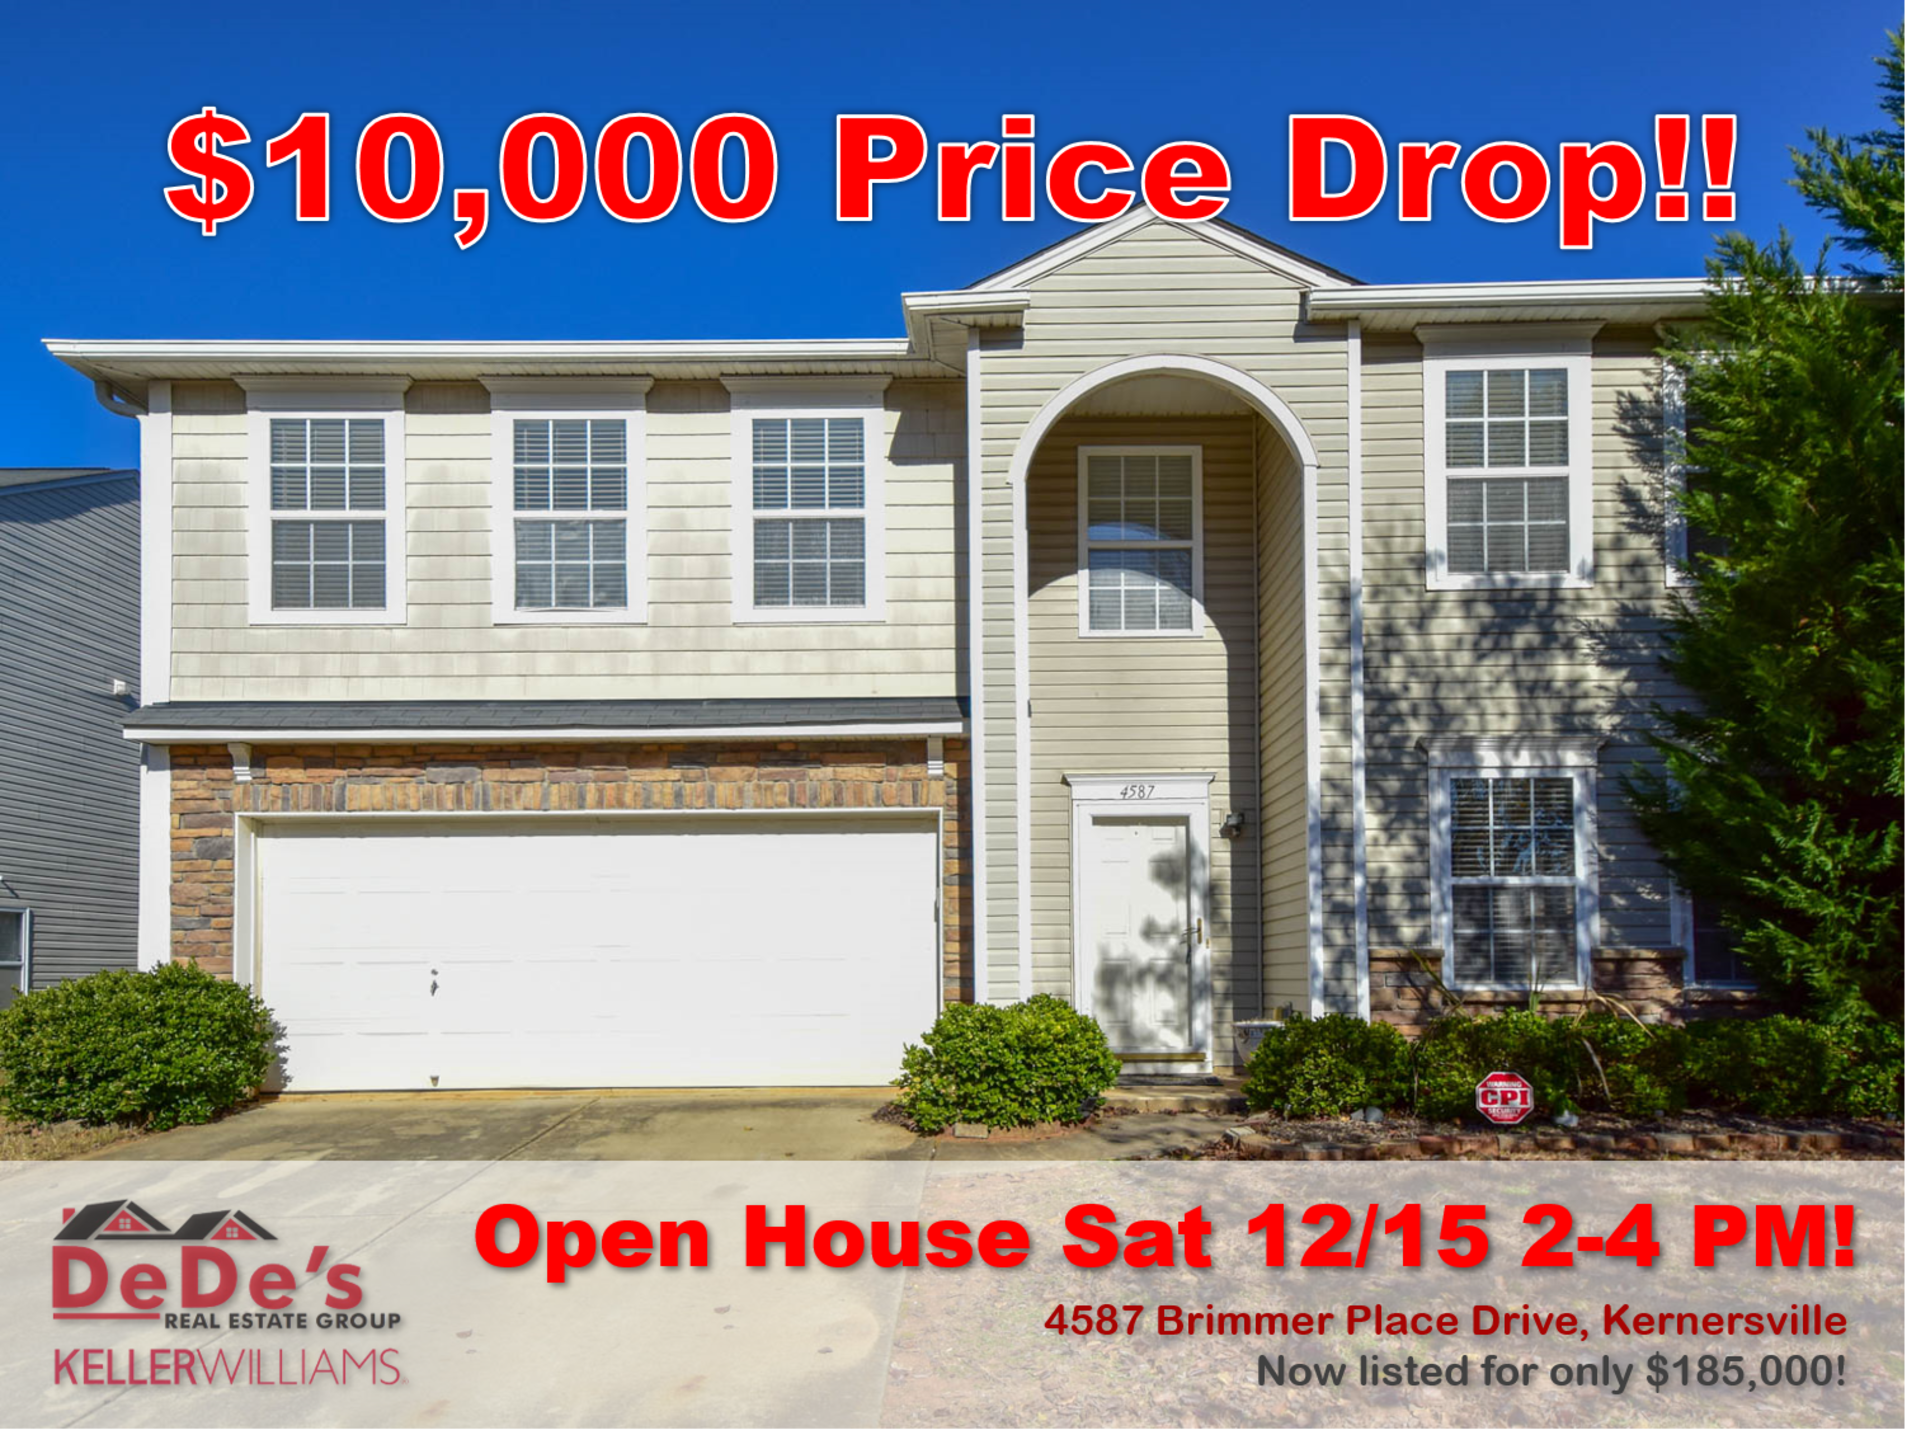 HUGE price Drop and OPEN HOUSE this Saturday